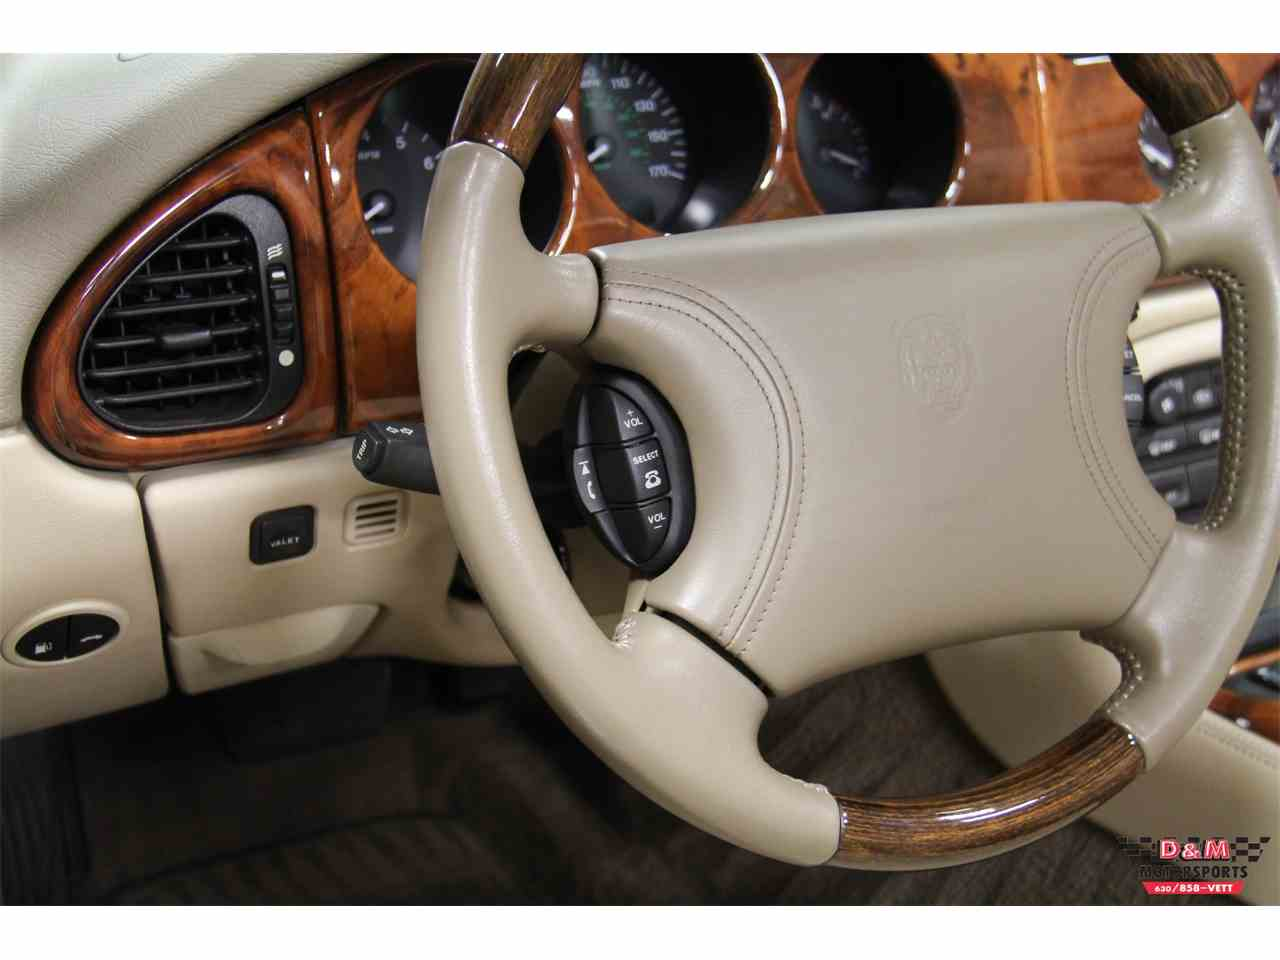 Large Picture of 1998 XK8 located in Illinois Offered by D & M Motorsports - MCA6